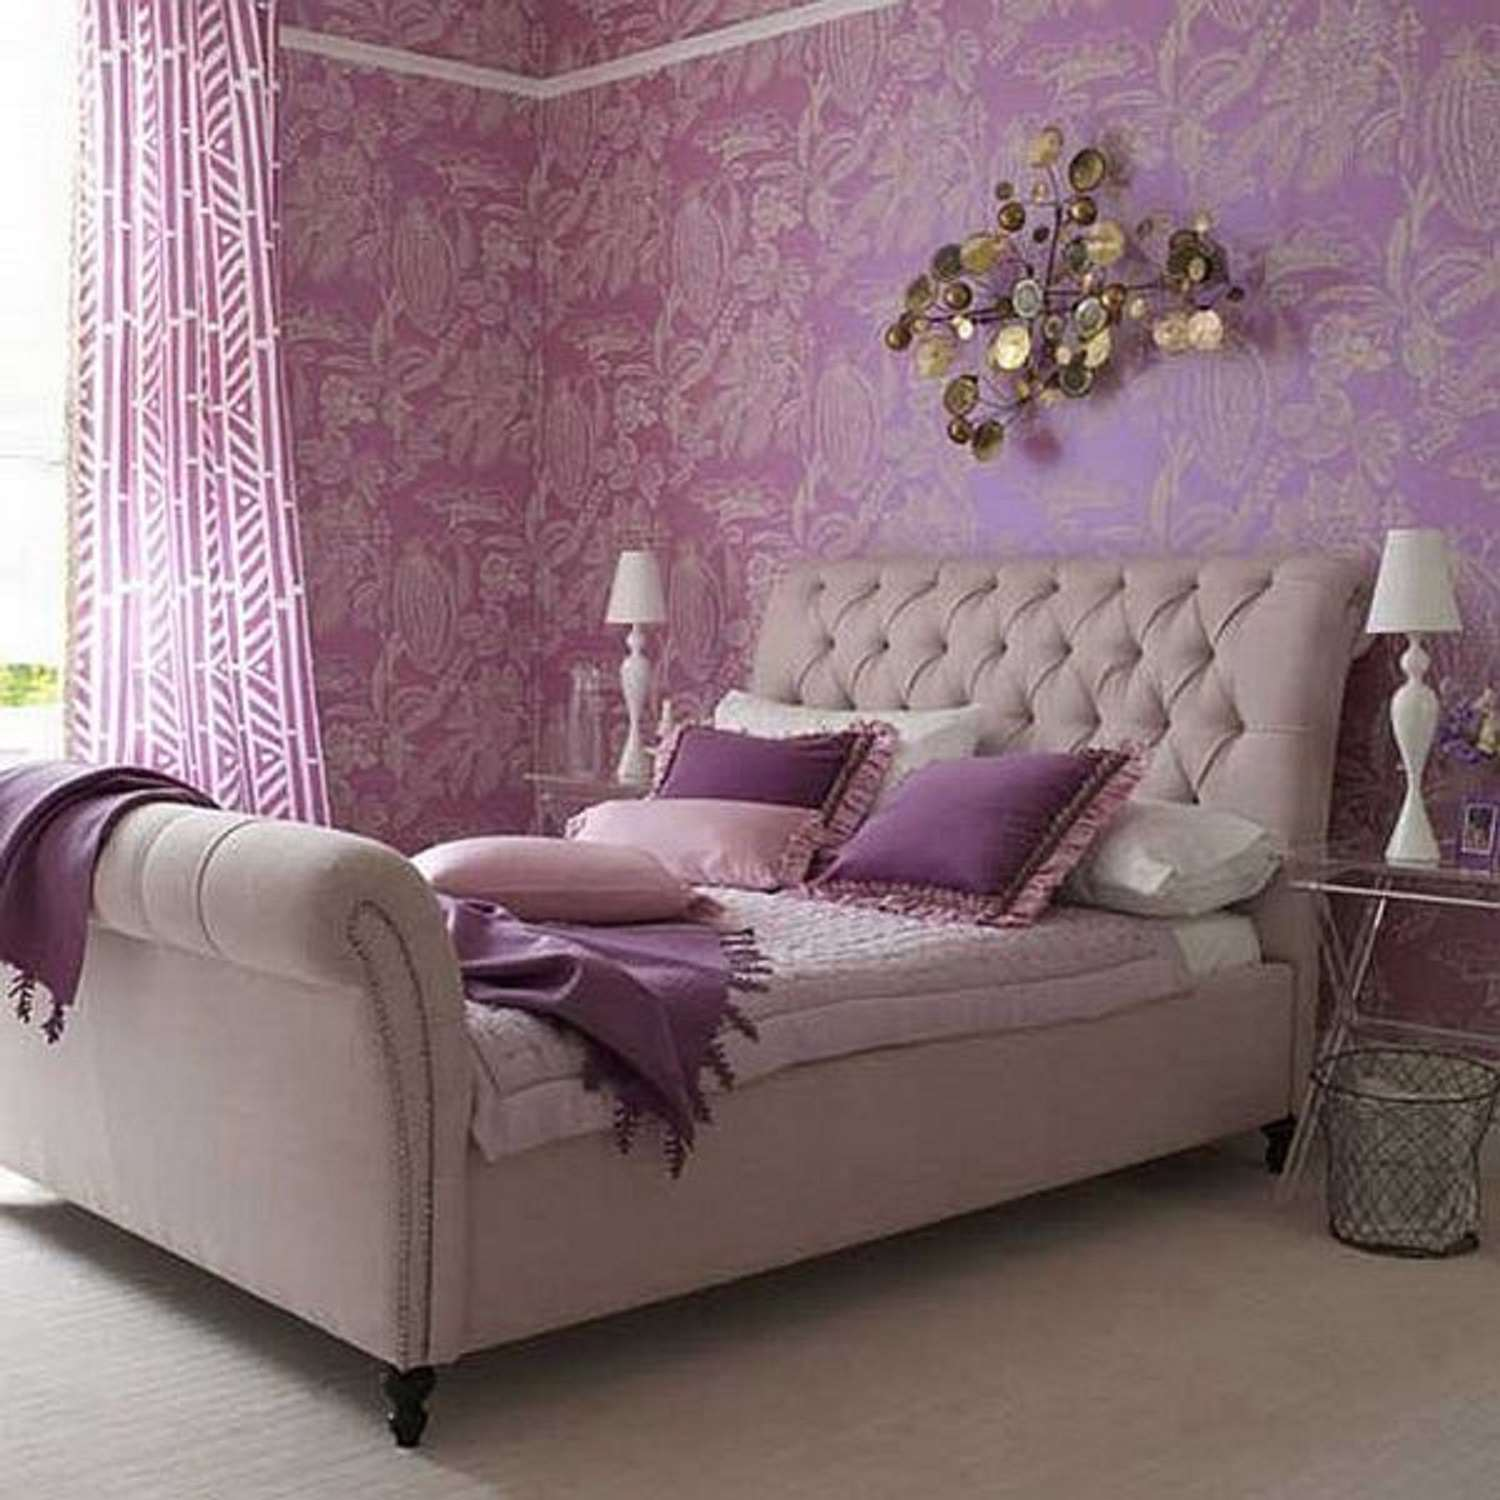 Tips and Photos for Decorating the Bedroom With Lavender